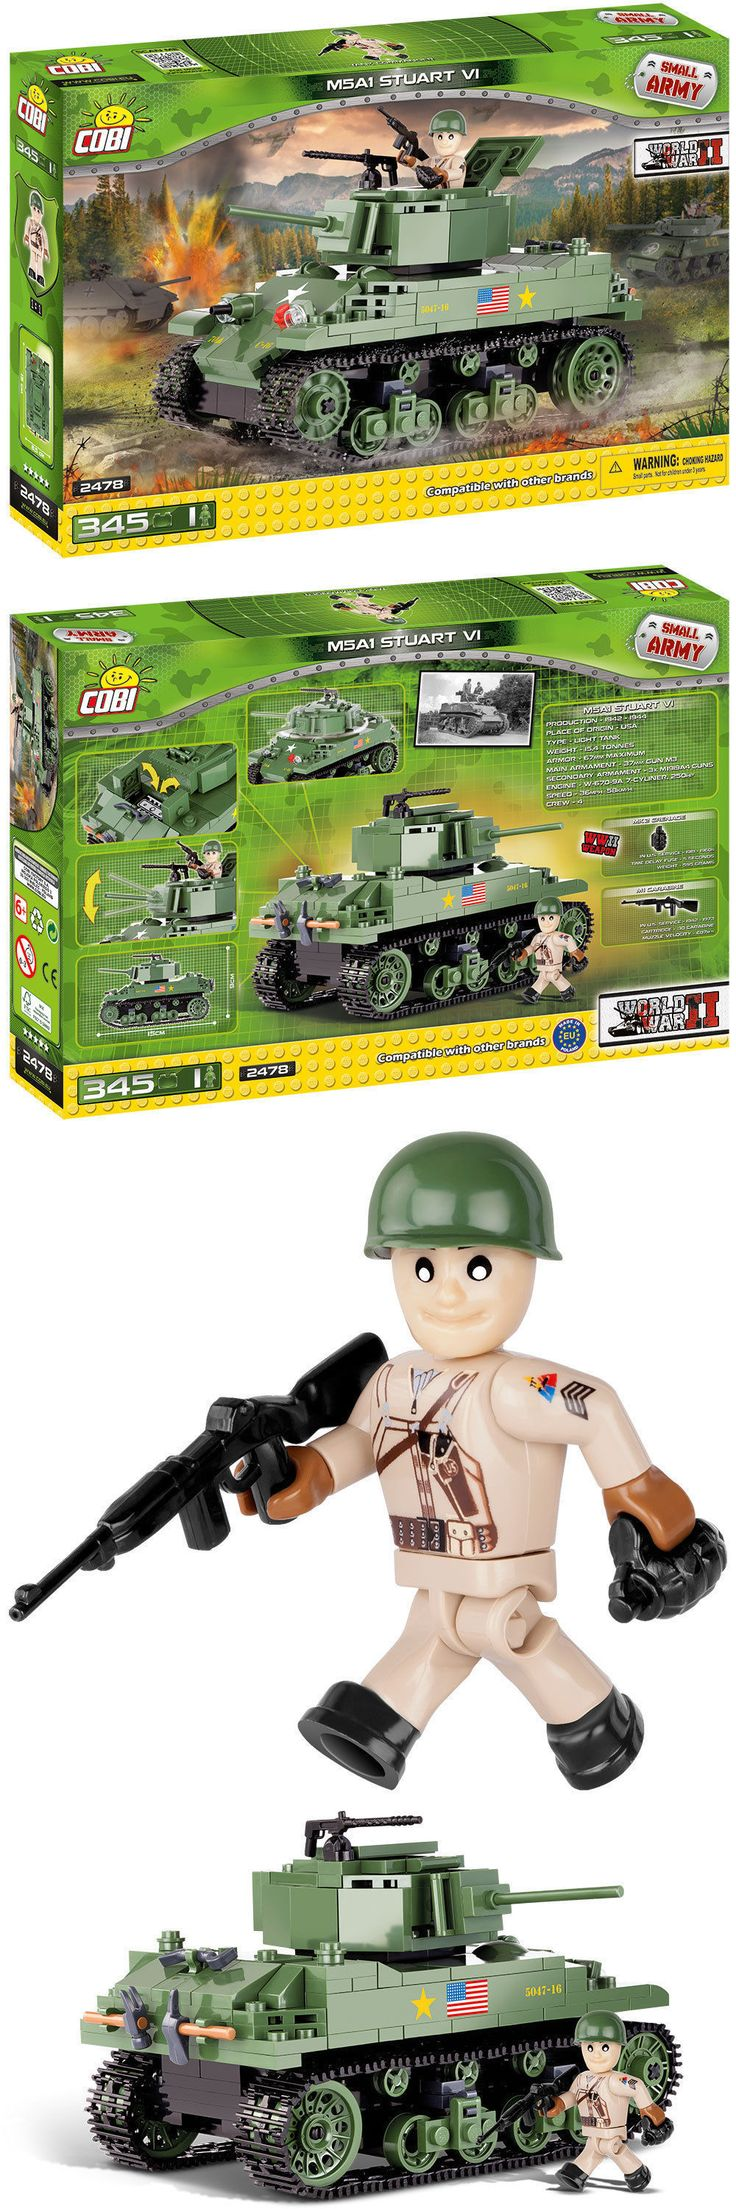 Other Building Toys 19015: Cobi M5a1 Stuart Vi Small Army Building Blocks (#2478) Wwii. Lego Compatible New -> BUY IT NOW ONLY: $34.95 on eBay!